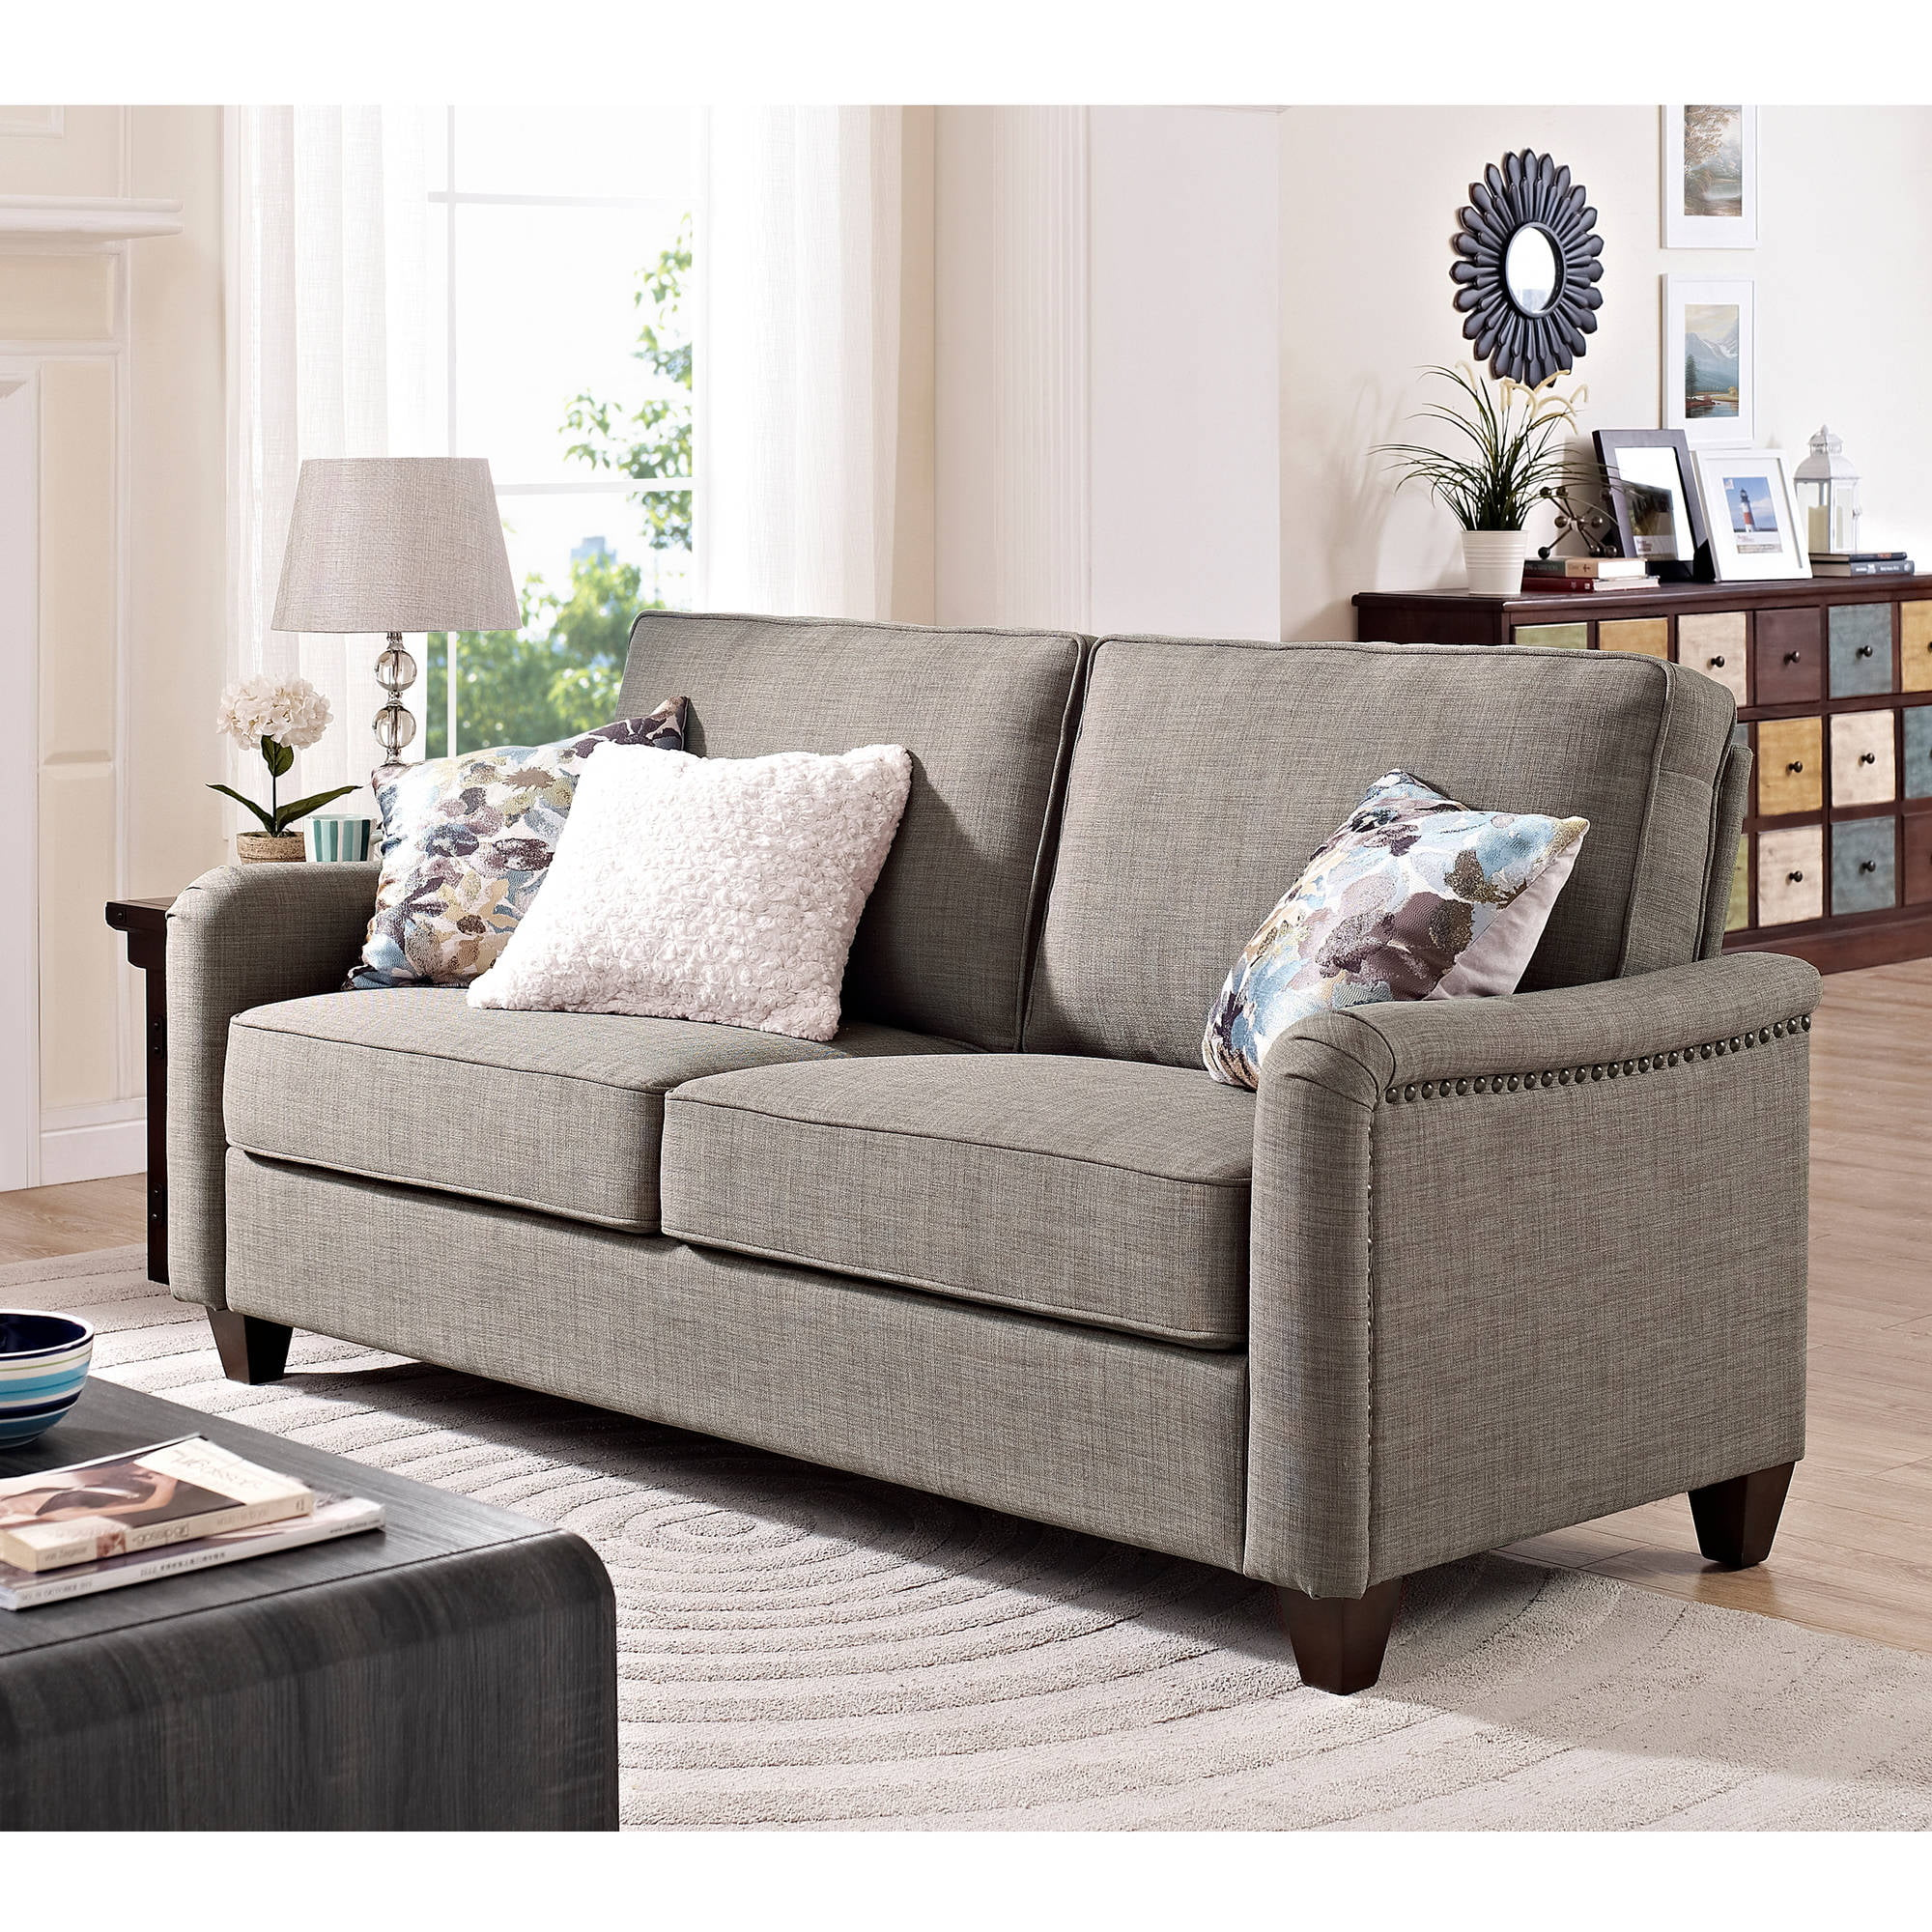 better homes gardens better homes and gardens grayson sofa wi rh walmart com cheap sofa sets walmart living room sofa sets walmart